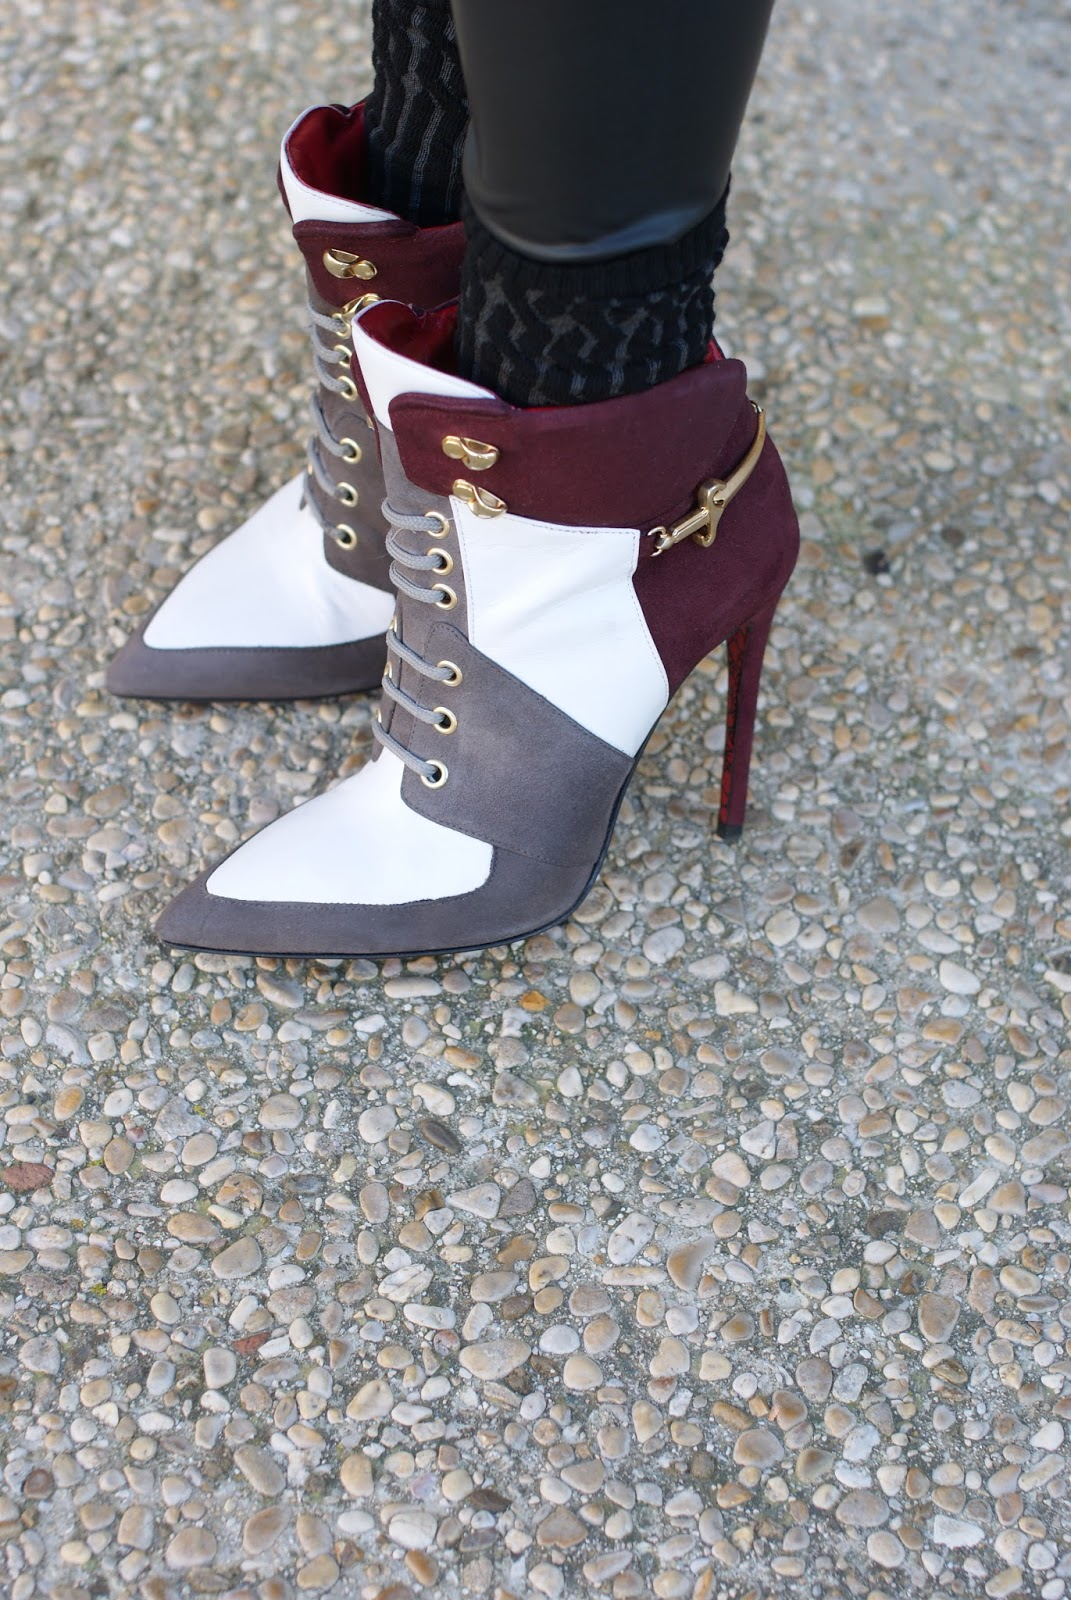 Cesare Paciotti multicolor heels on Fashion and Cookies fashion blog, fashion blogger style